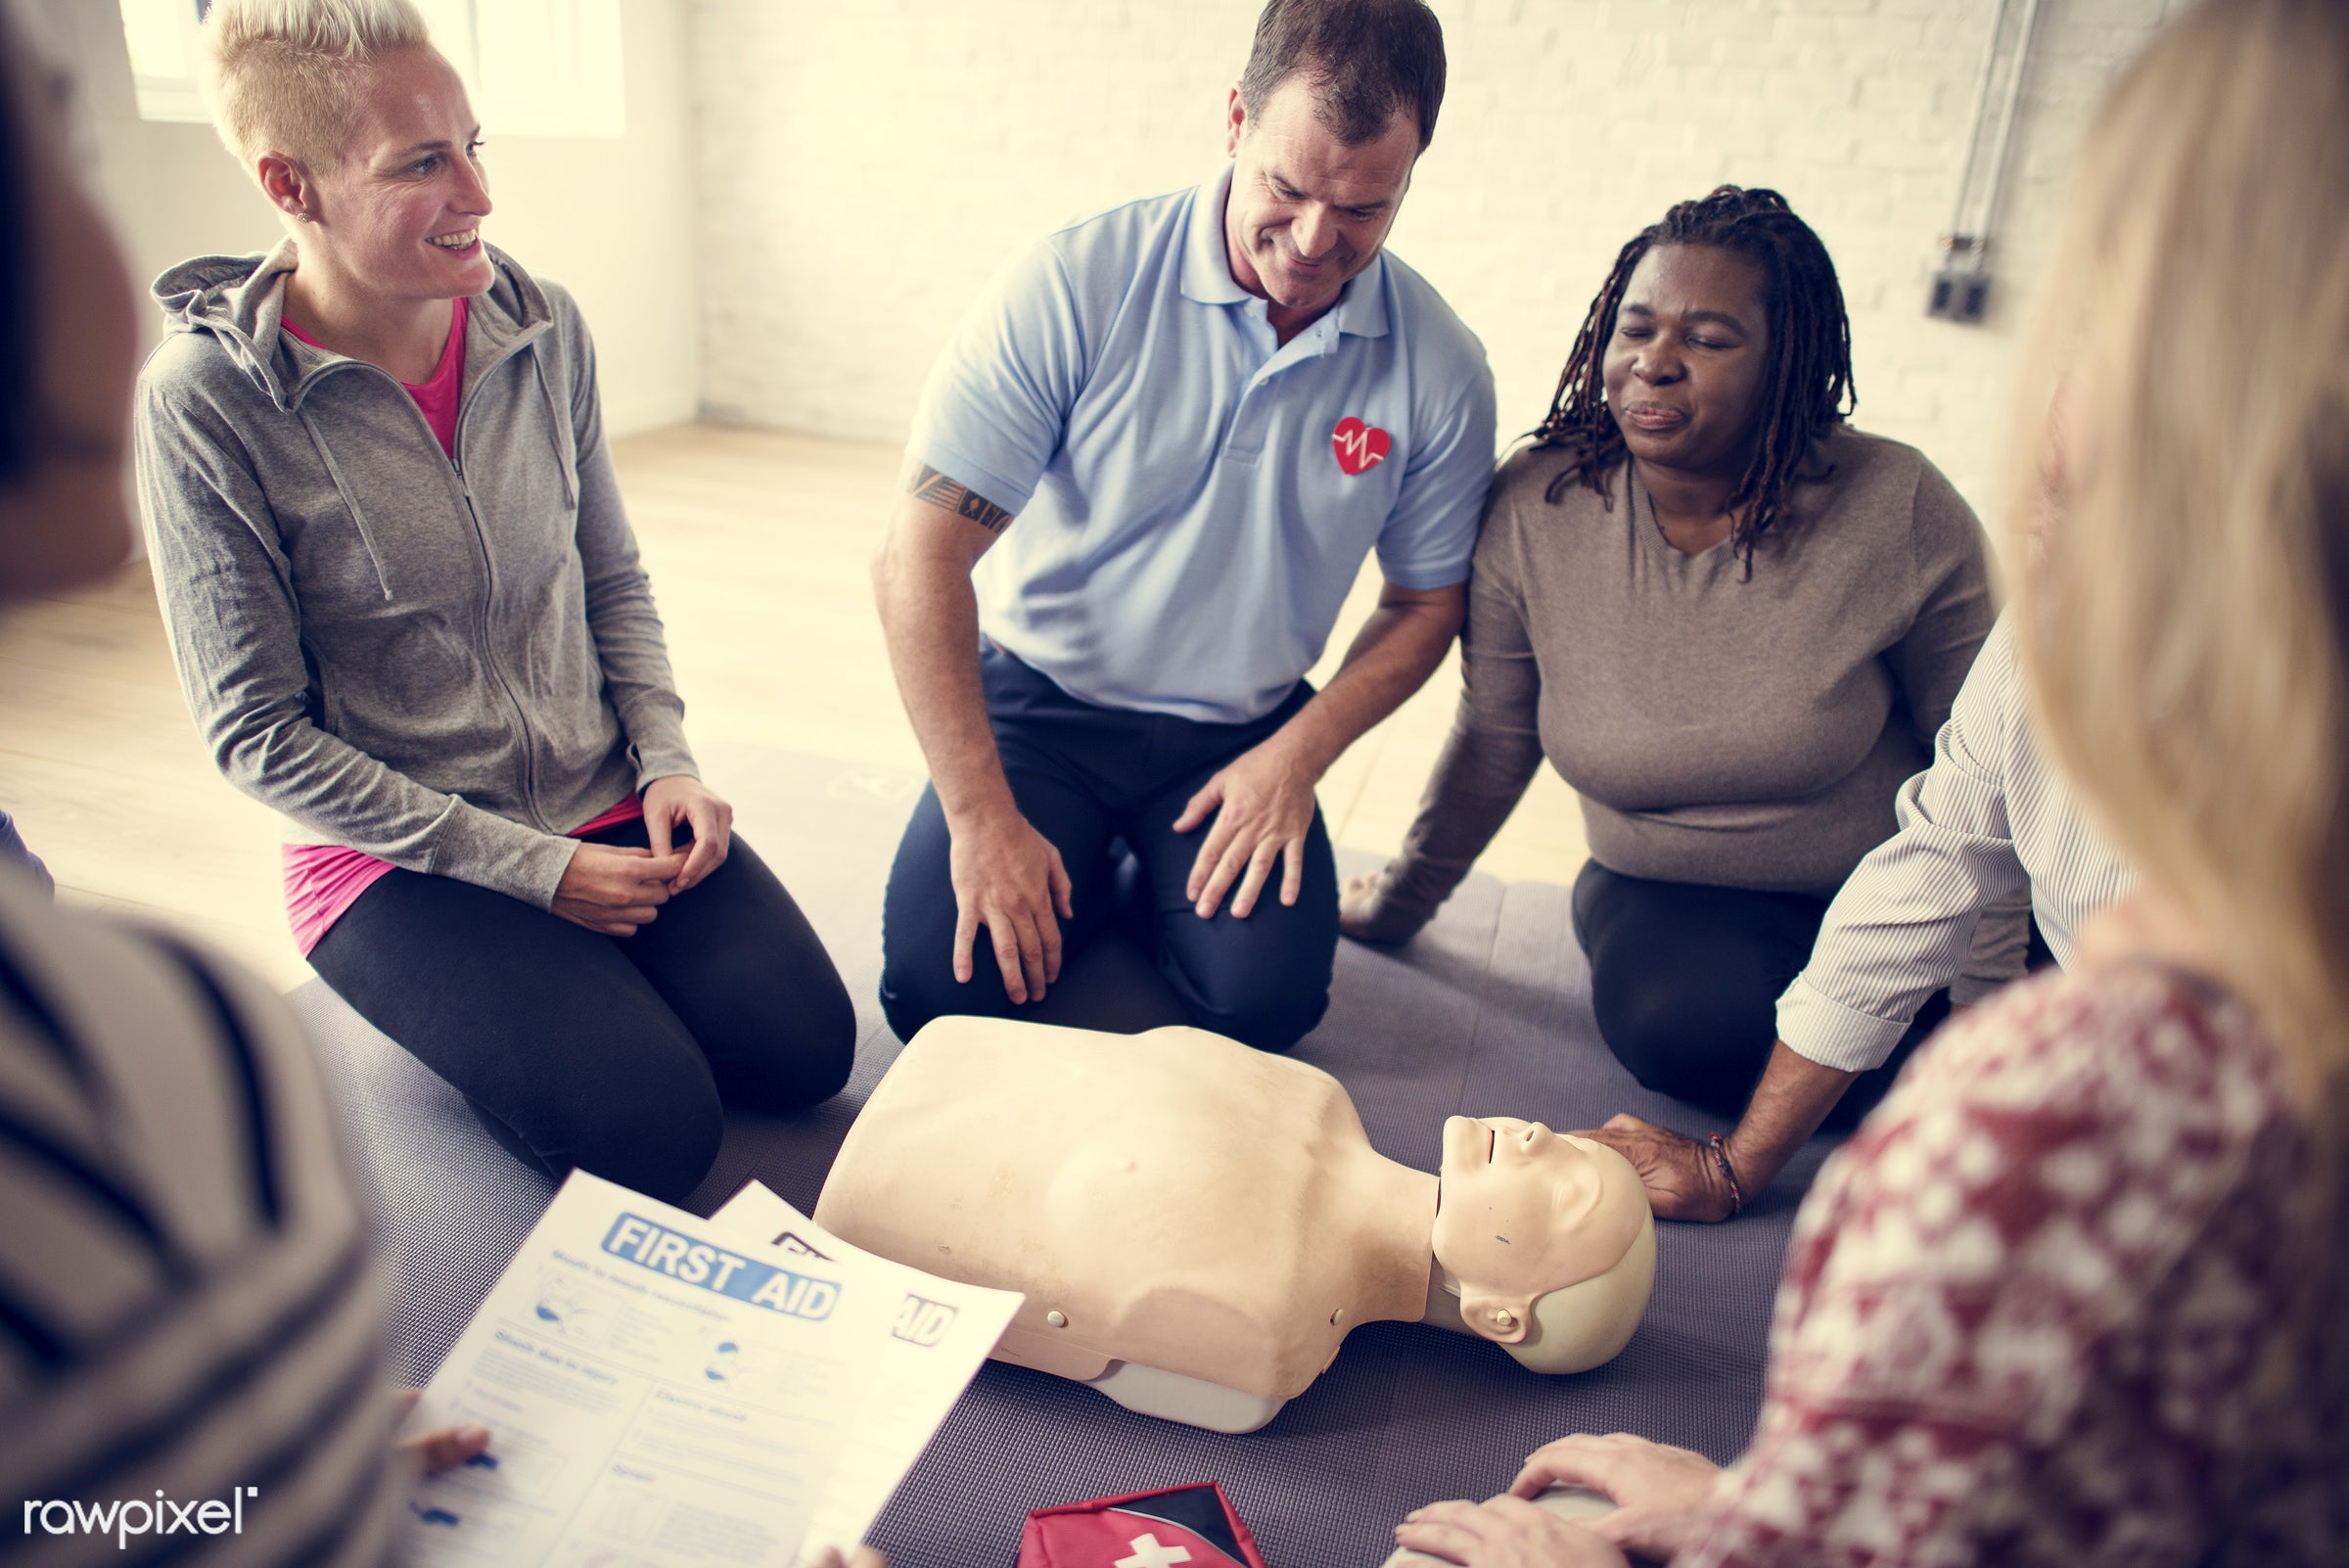 cpr training, person, knowledge, save, first aid, resuscitation, treatment, emergency, indoors, aid, people, emergency...